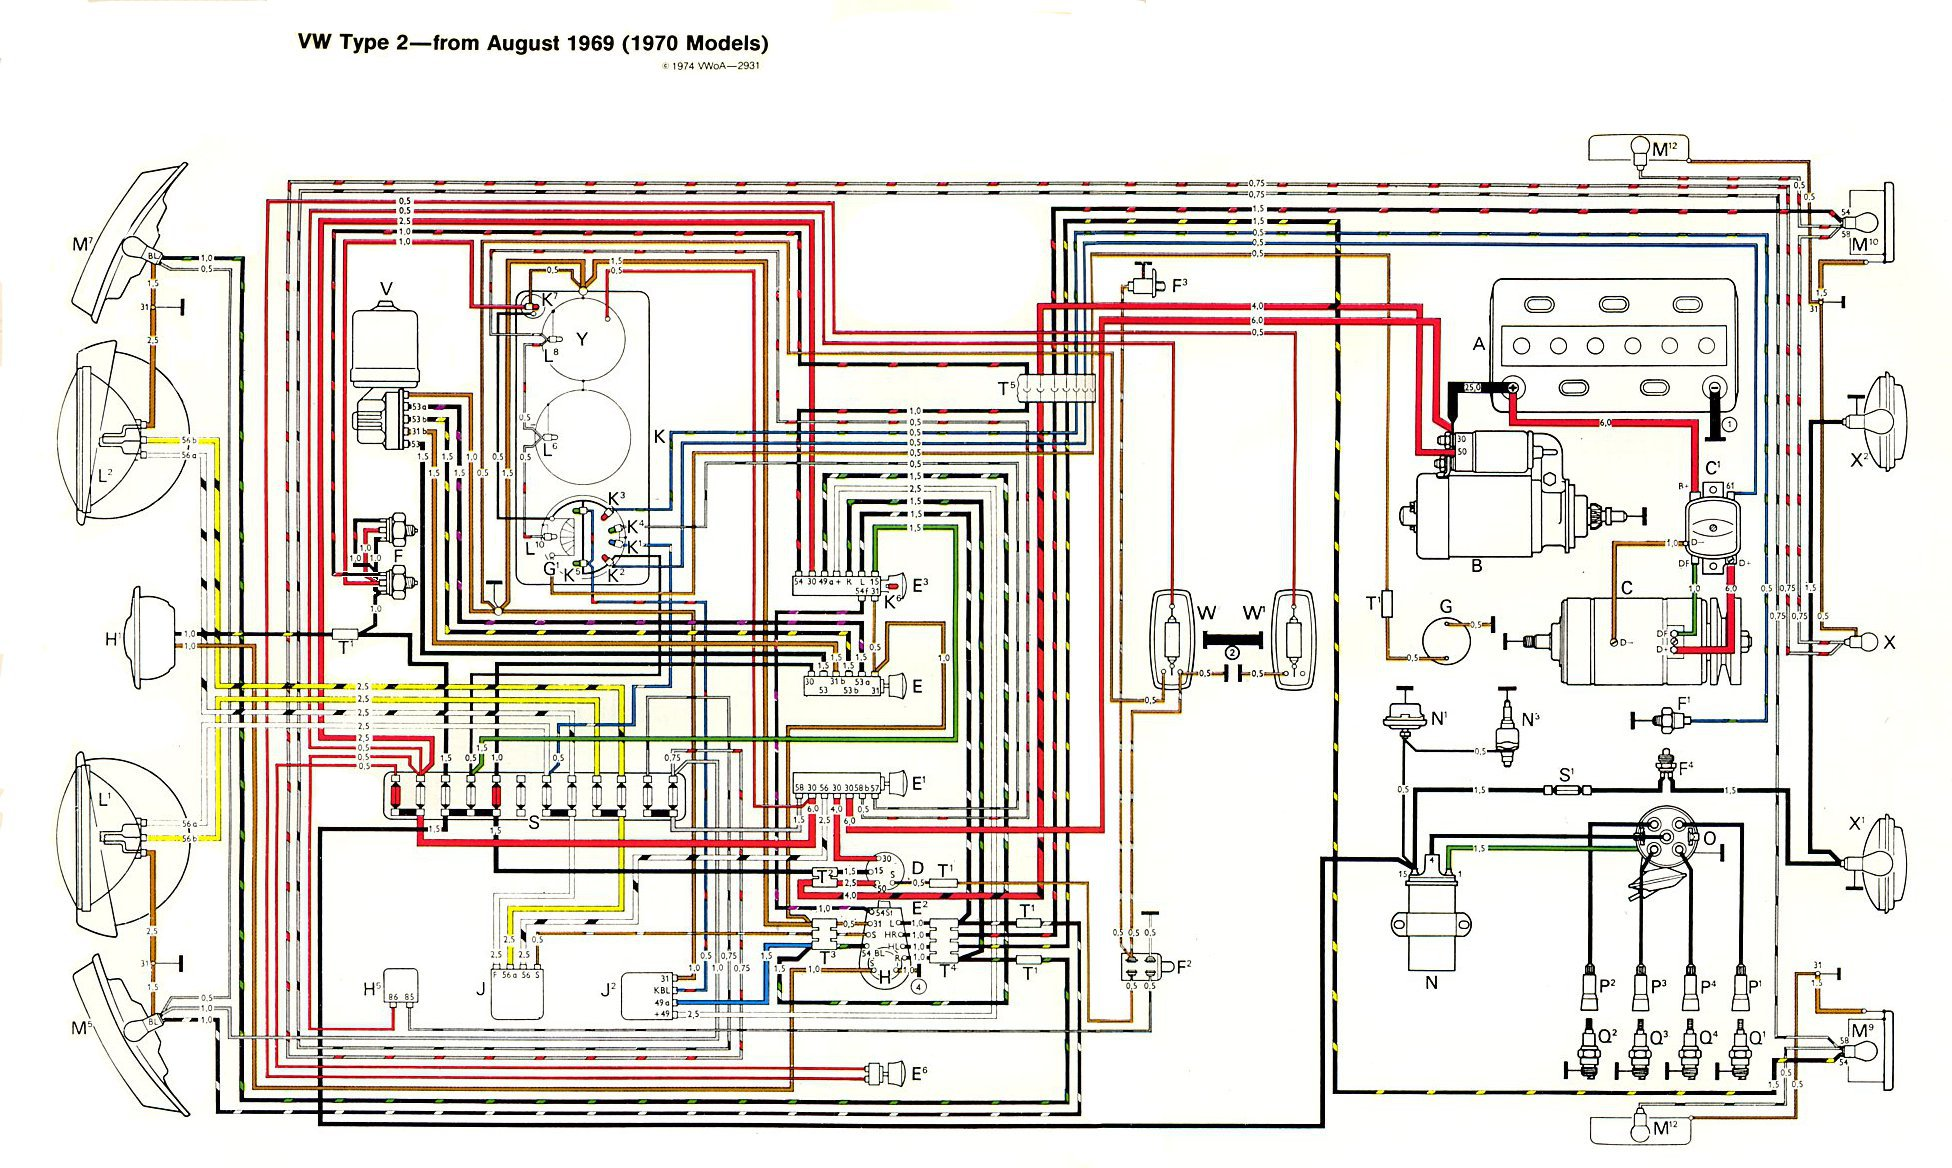 baybus_70 thesamba com type 2 wiring diagrams 1970 vw bug wiring diagram at creativeand.co